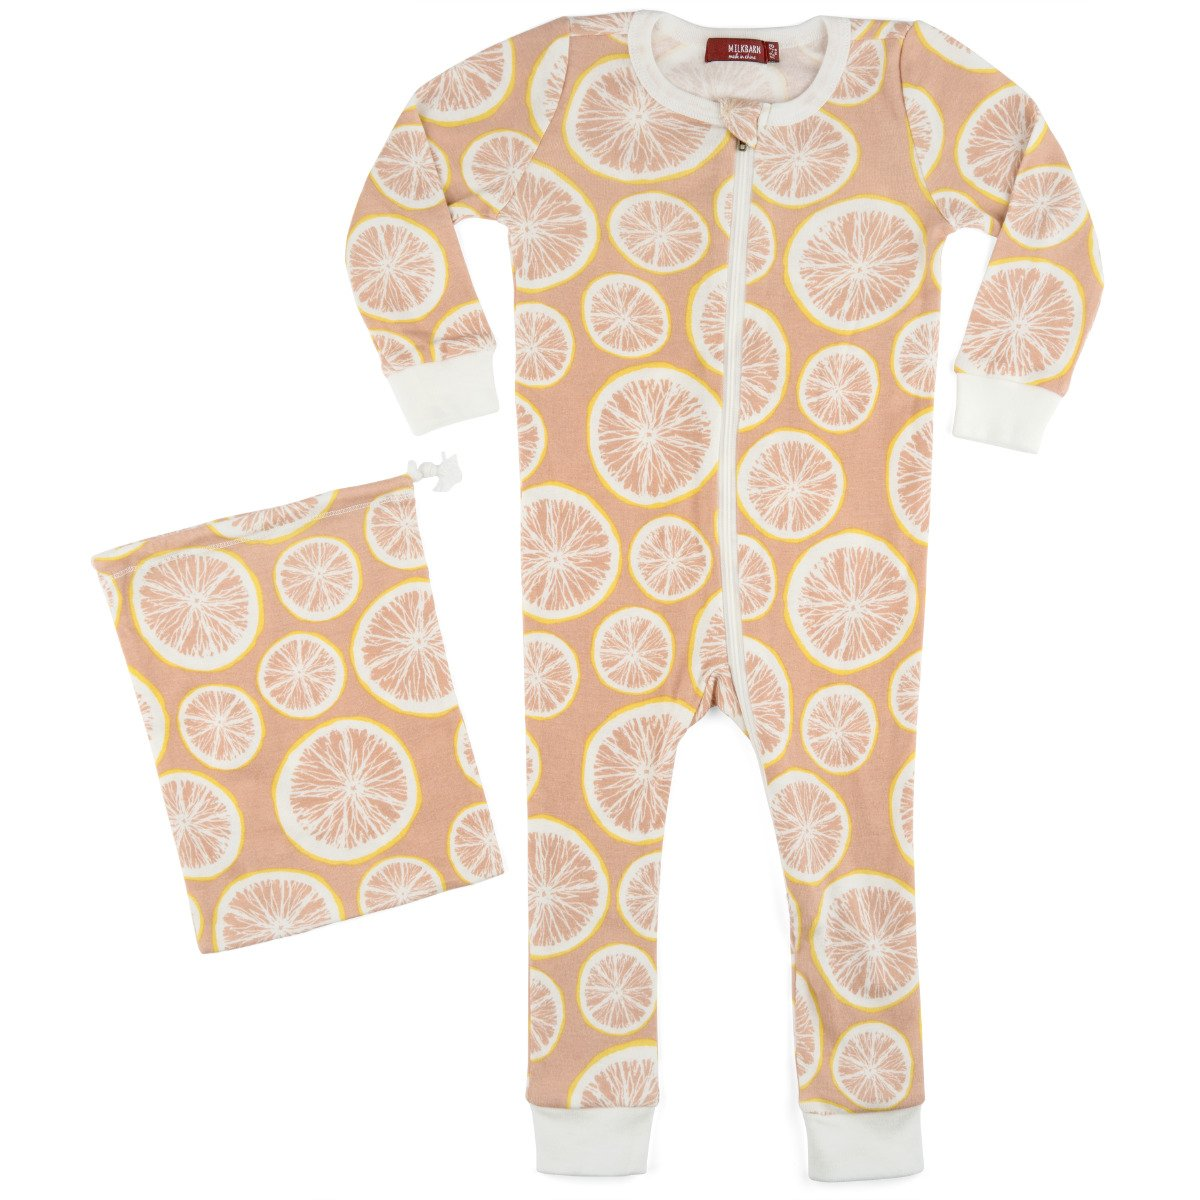 MilkBarn Organic Cotton Zipper Pajama Grapefruit 38088